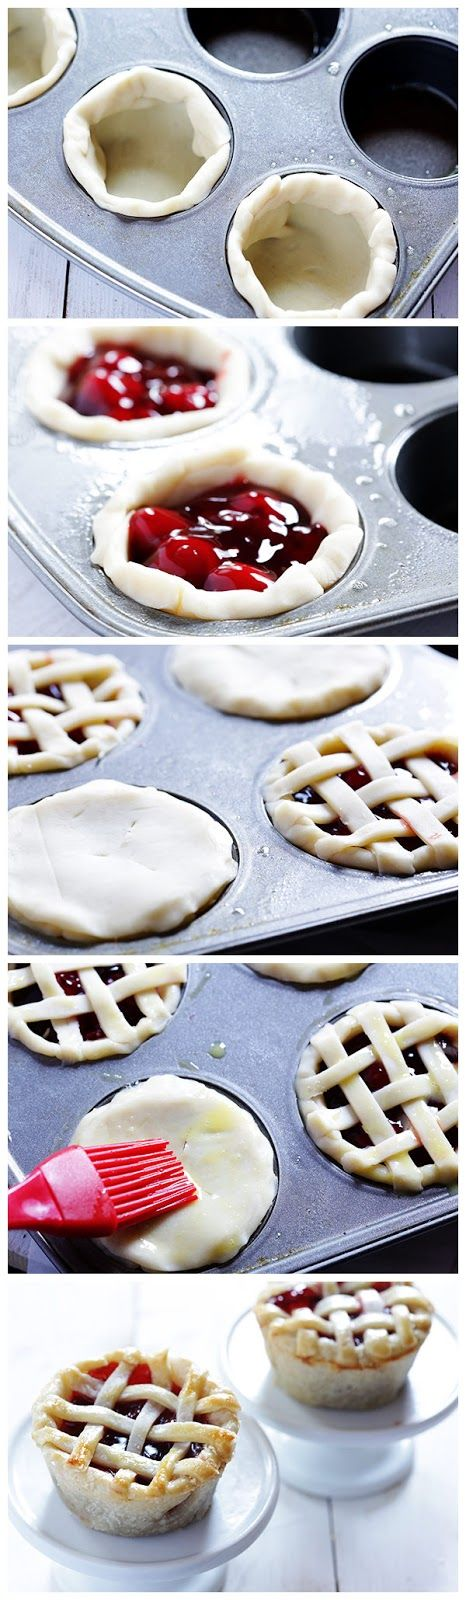 How to Make Mini Pies in a Cupcake Tin